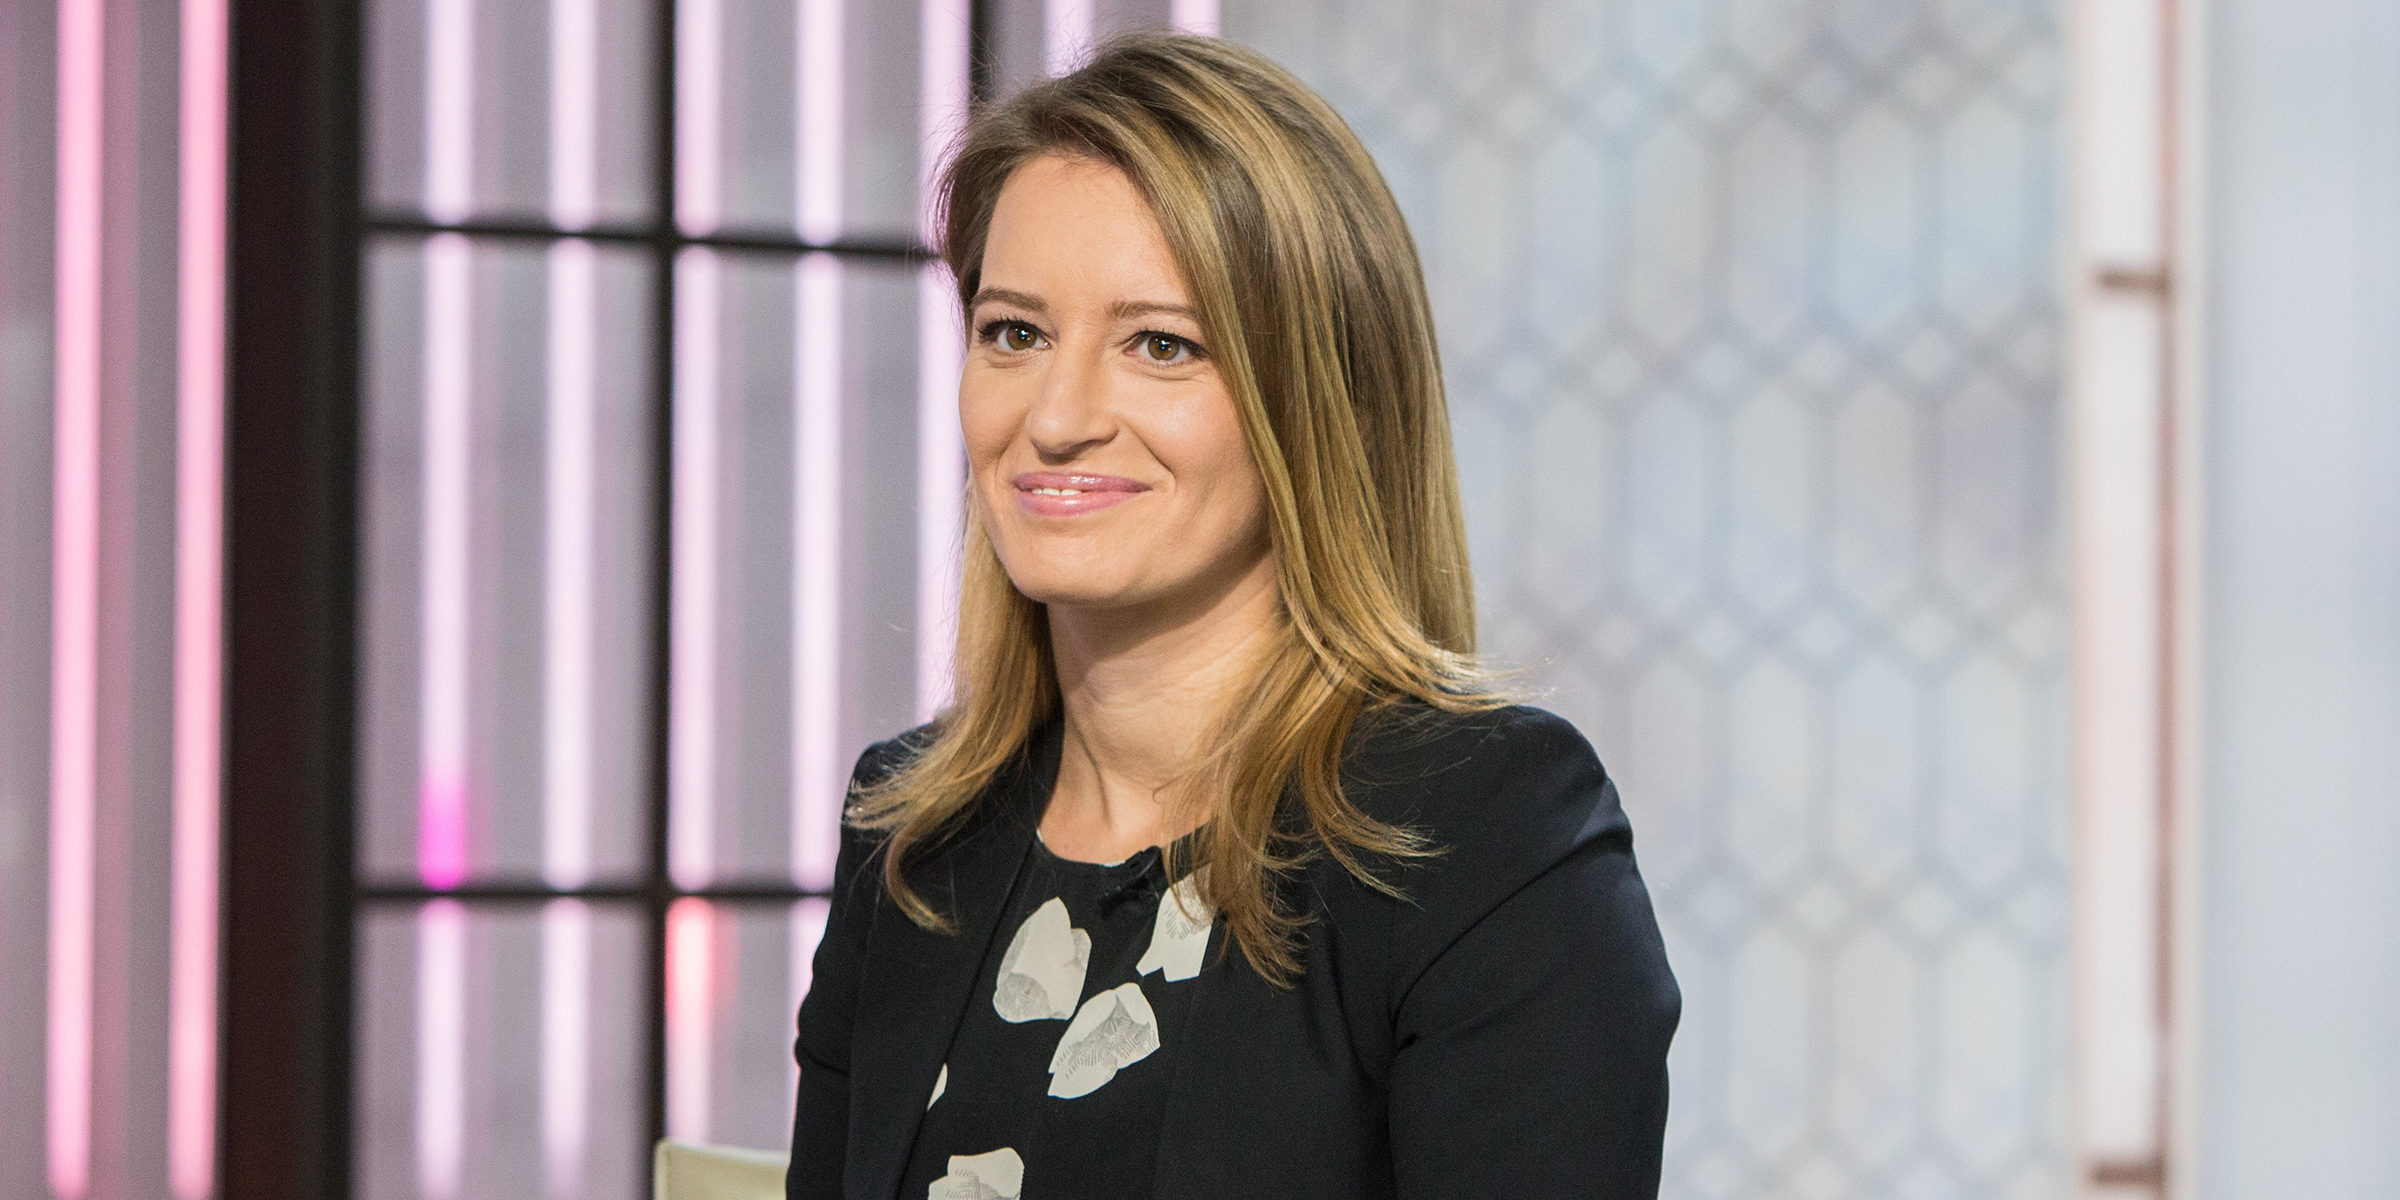 Msnbcs Katy Tur And Husband Announced Birth Of First Child